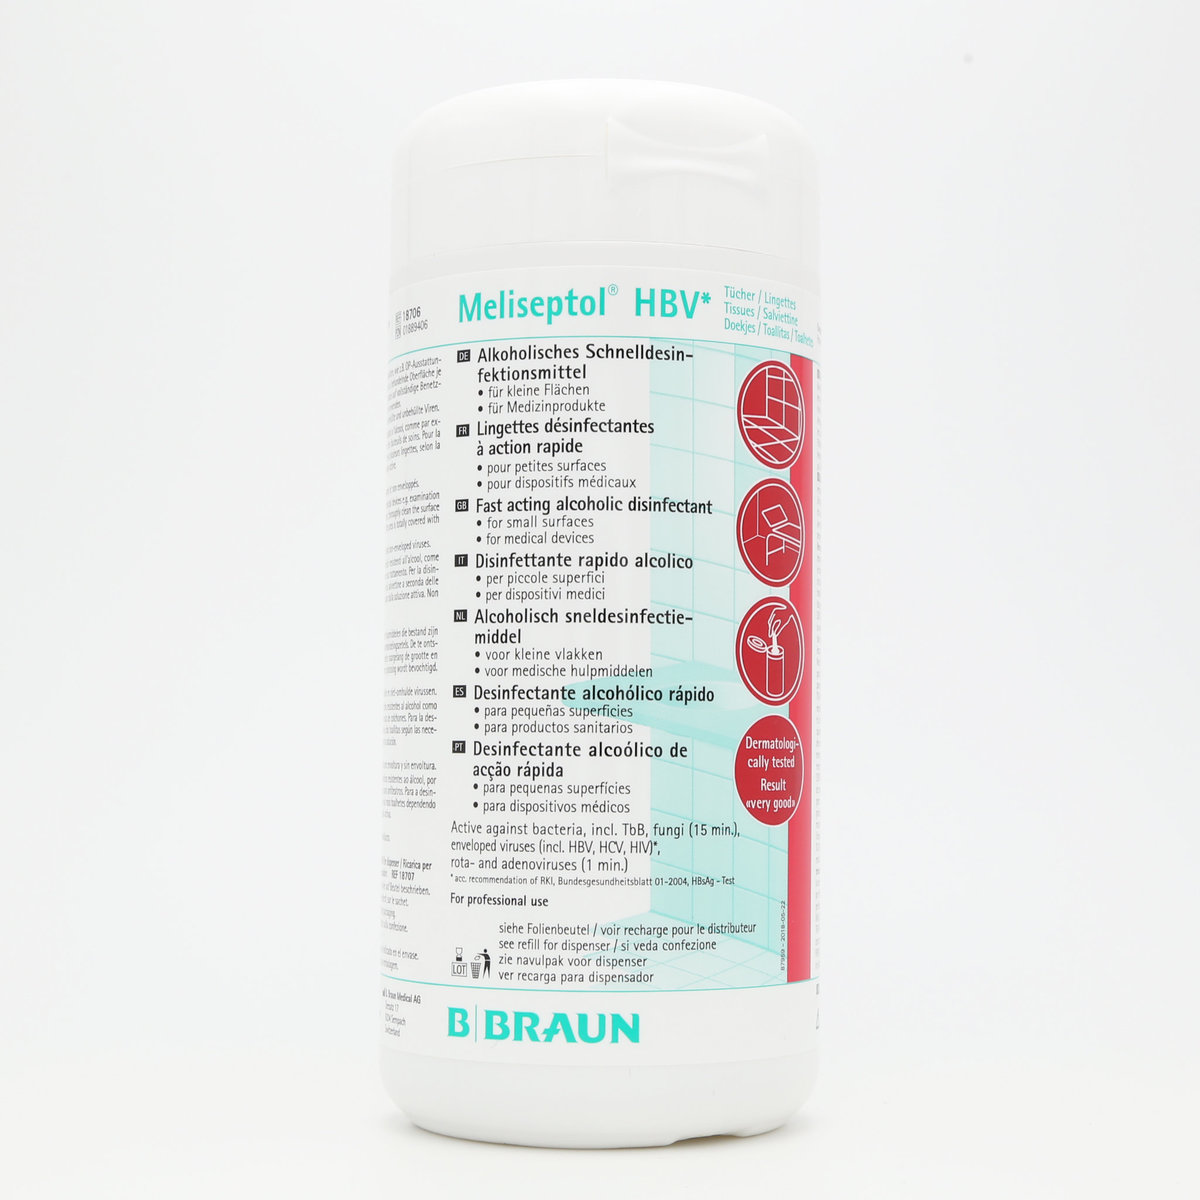 [100wipes] Meliseptol® HBV Tissues-Wipe disinfection of surfaces (alcoholic)-Parallel Imports Product